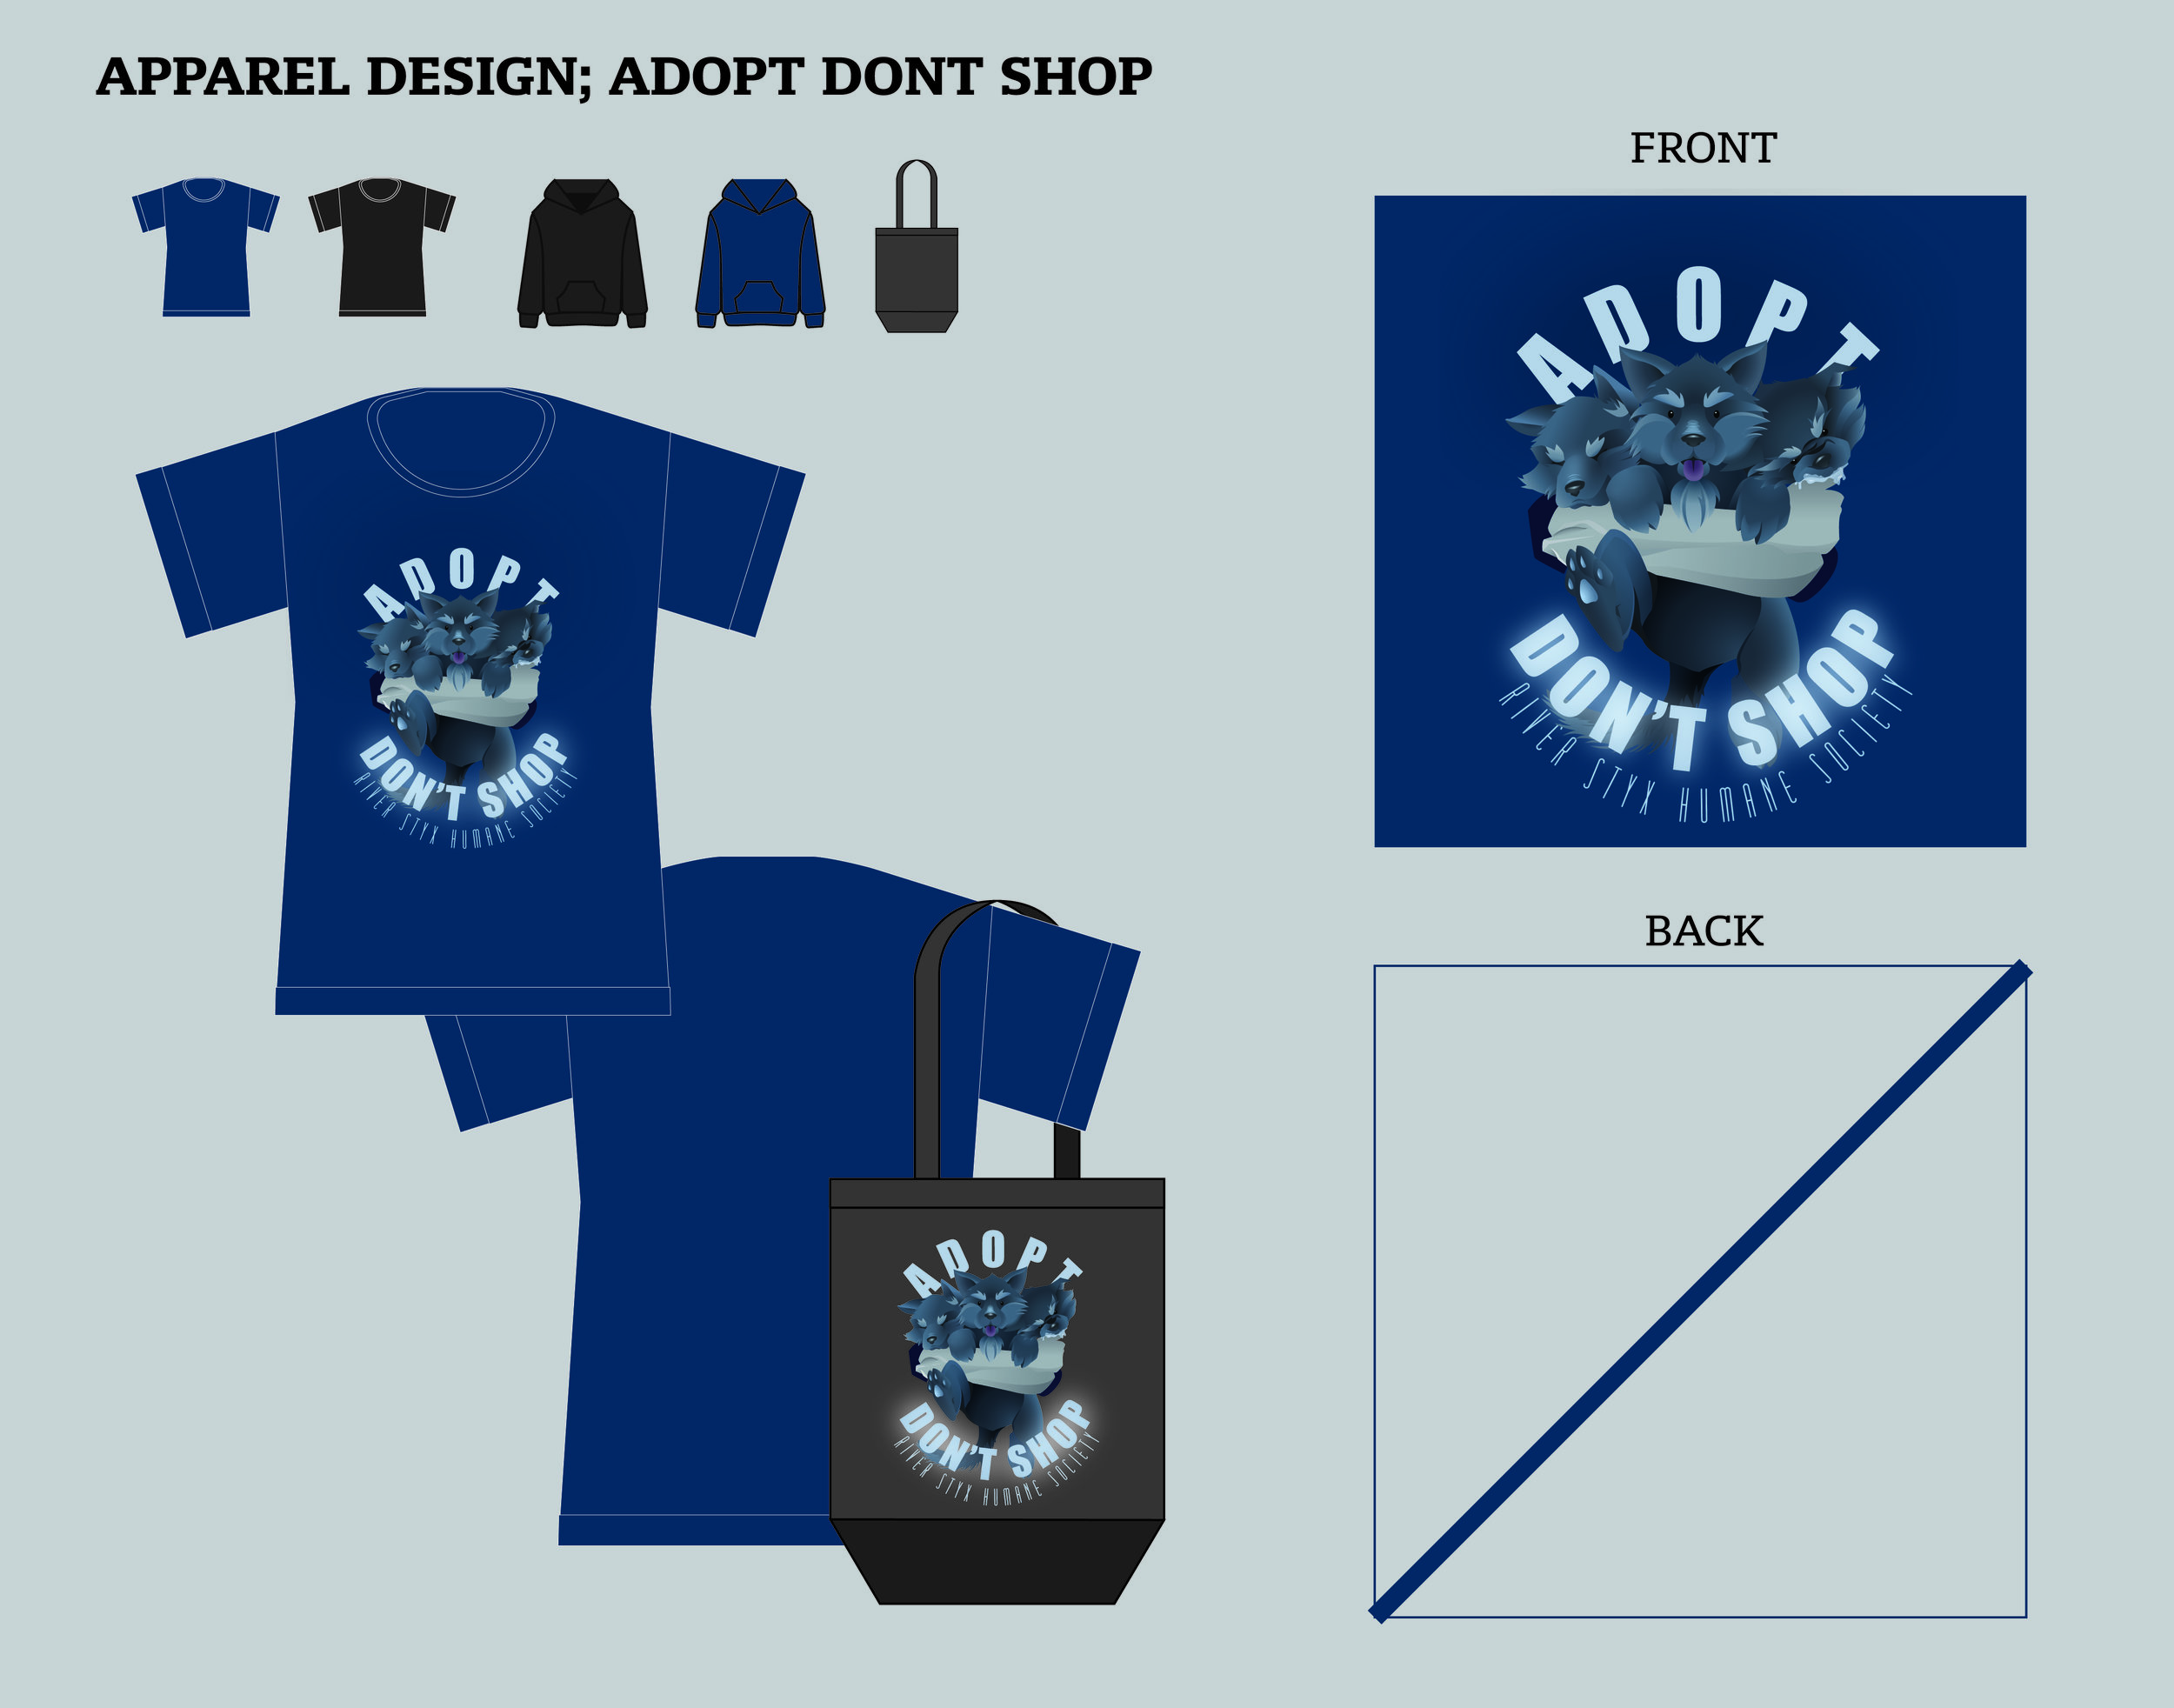 Shirt template adopt dont shop-01.jpg